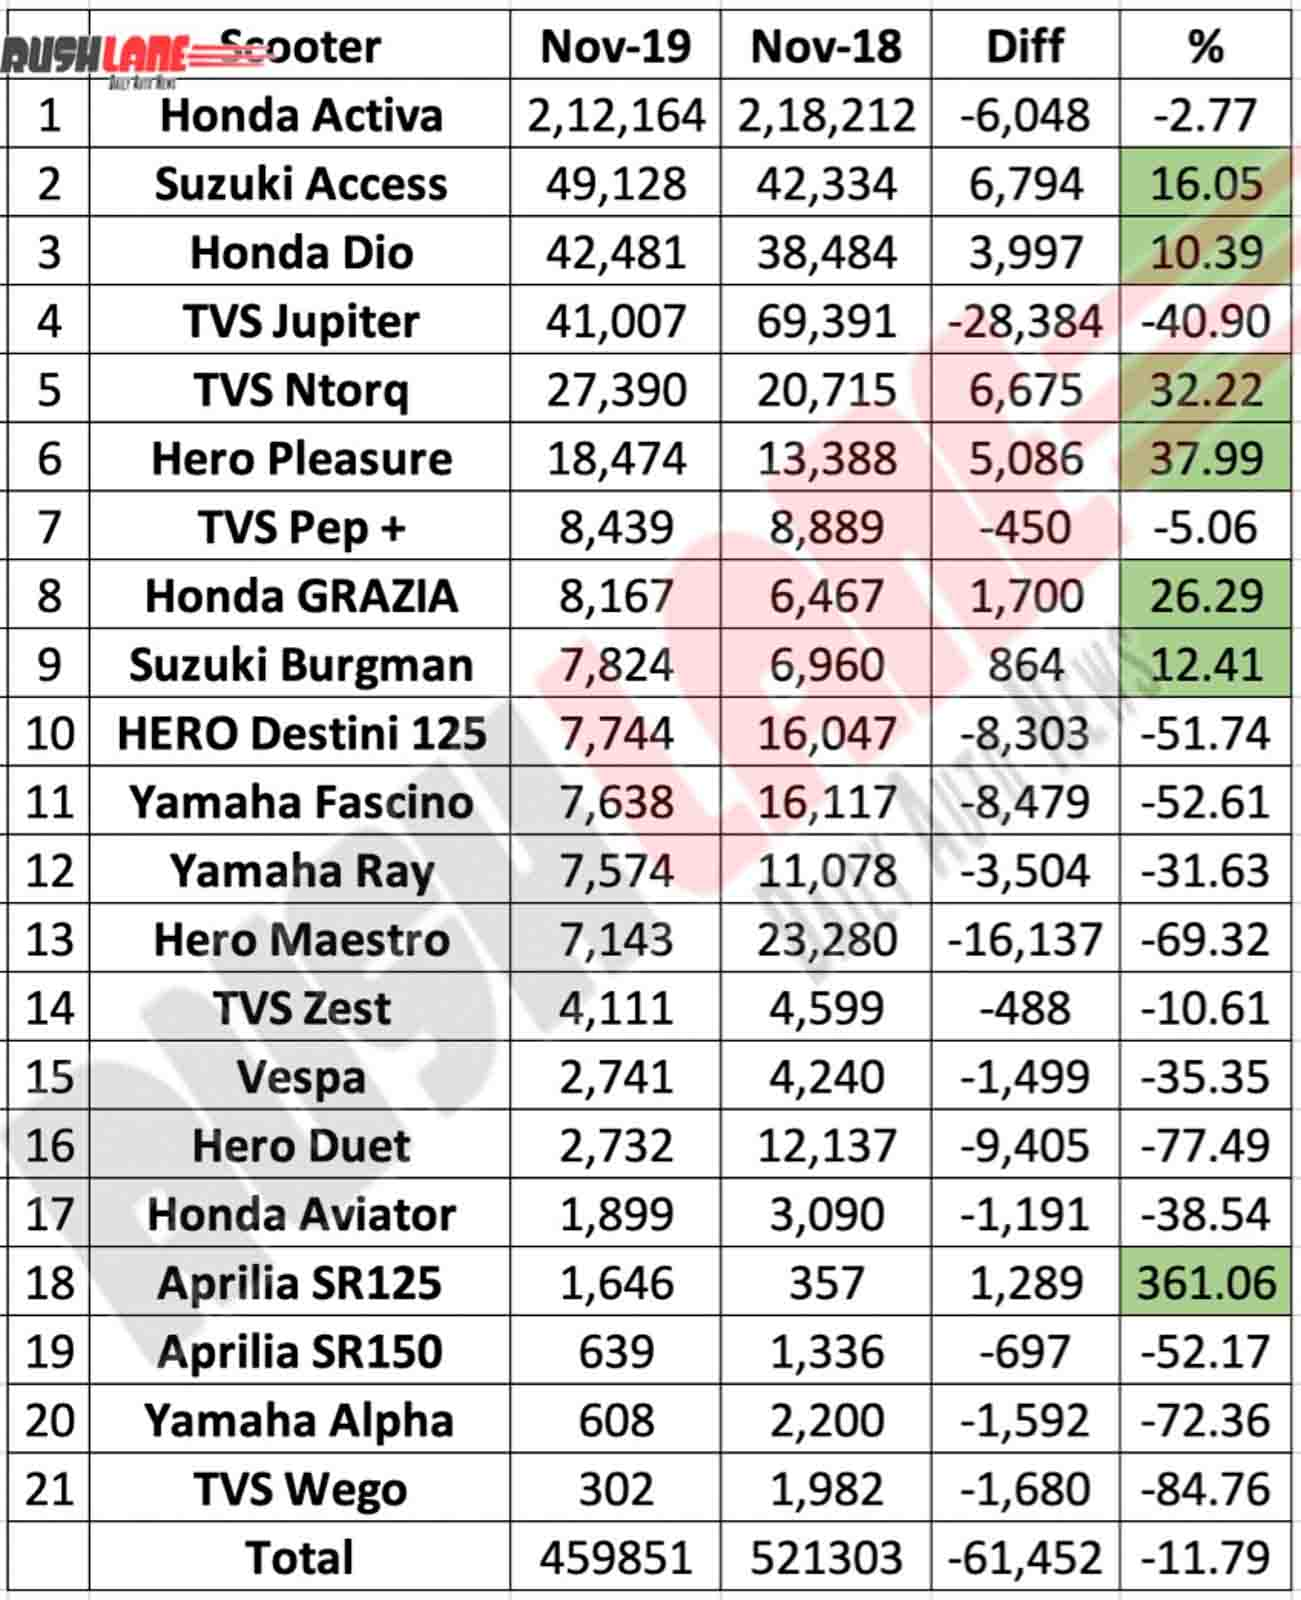 Best selling scooters Nov 2019 Top 21